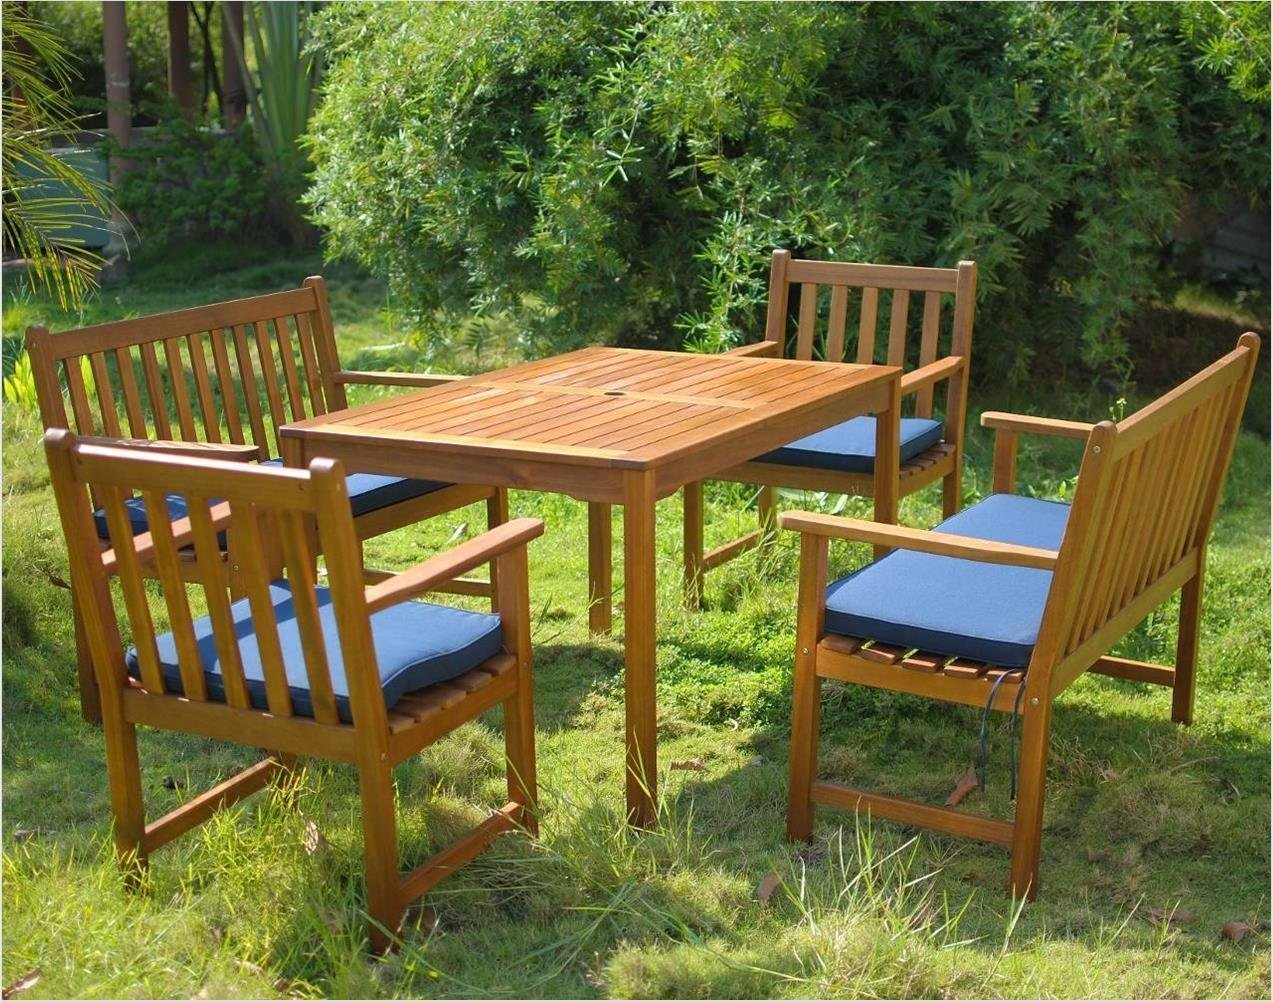 6 seater patio set with cushions simply wood for Best rated patio furniture